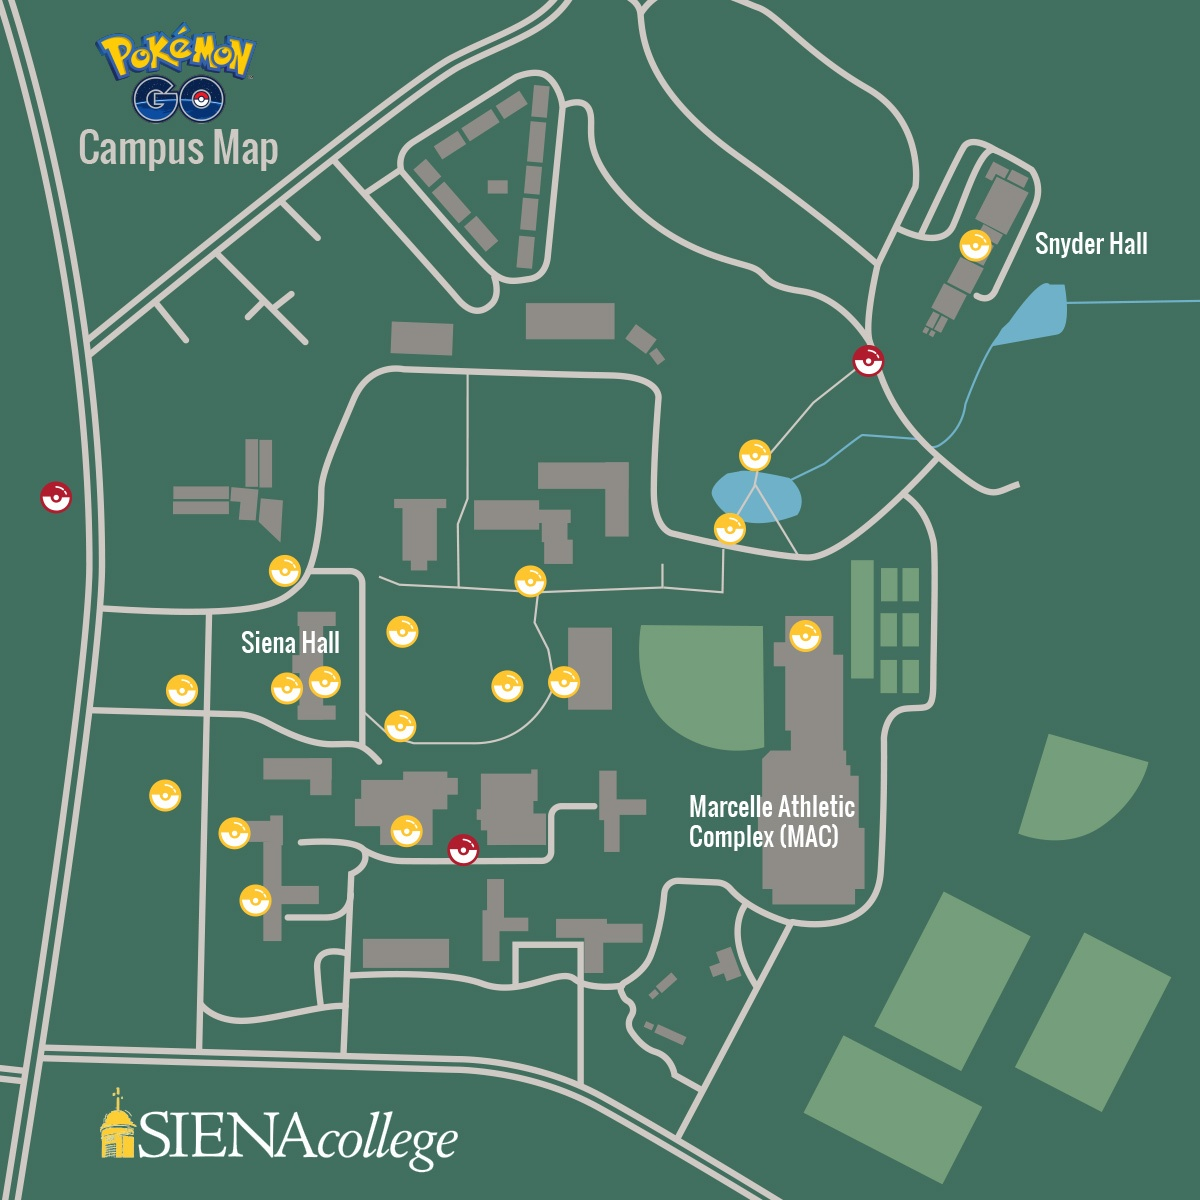 the official siena college pokemon go map